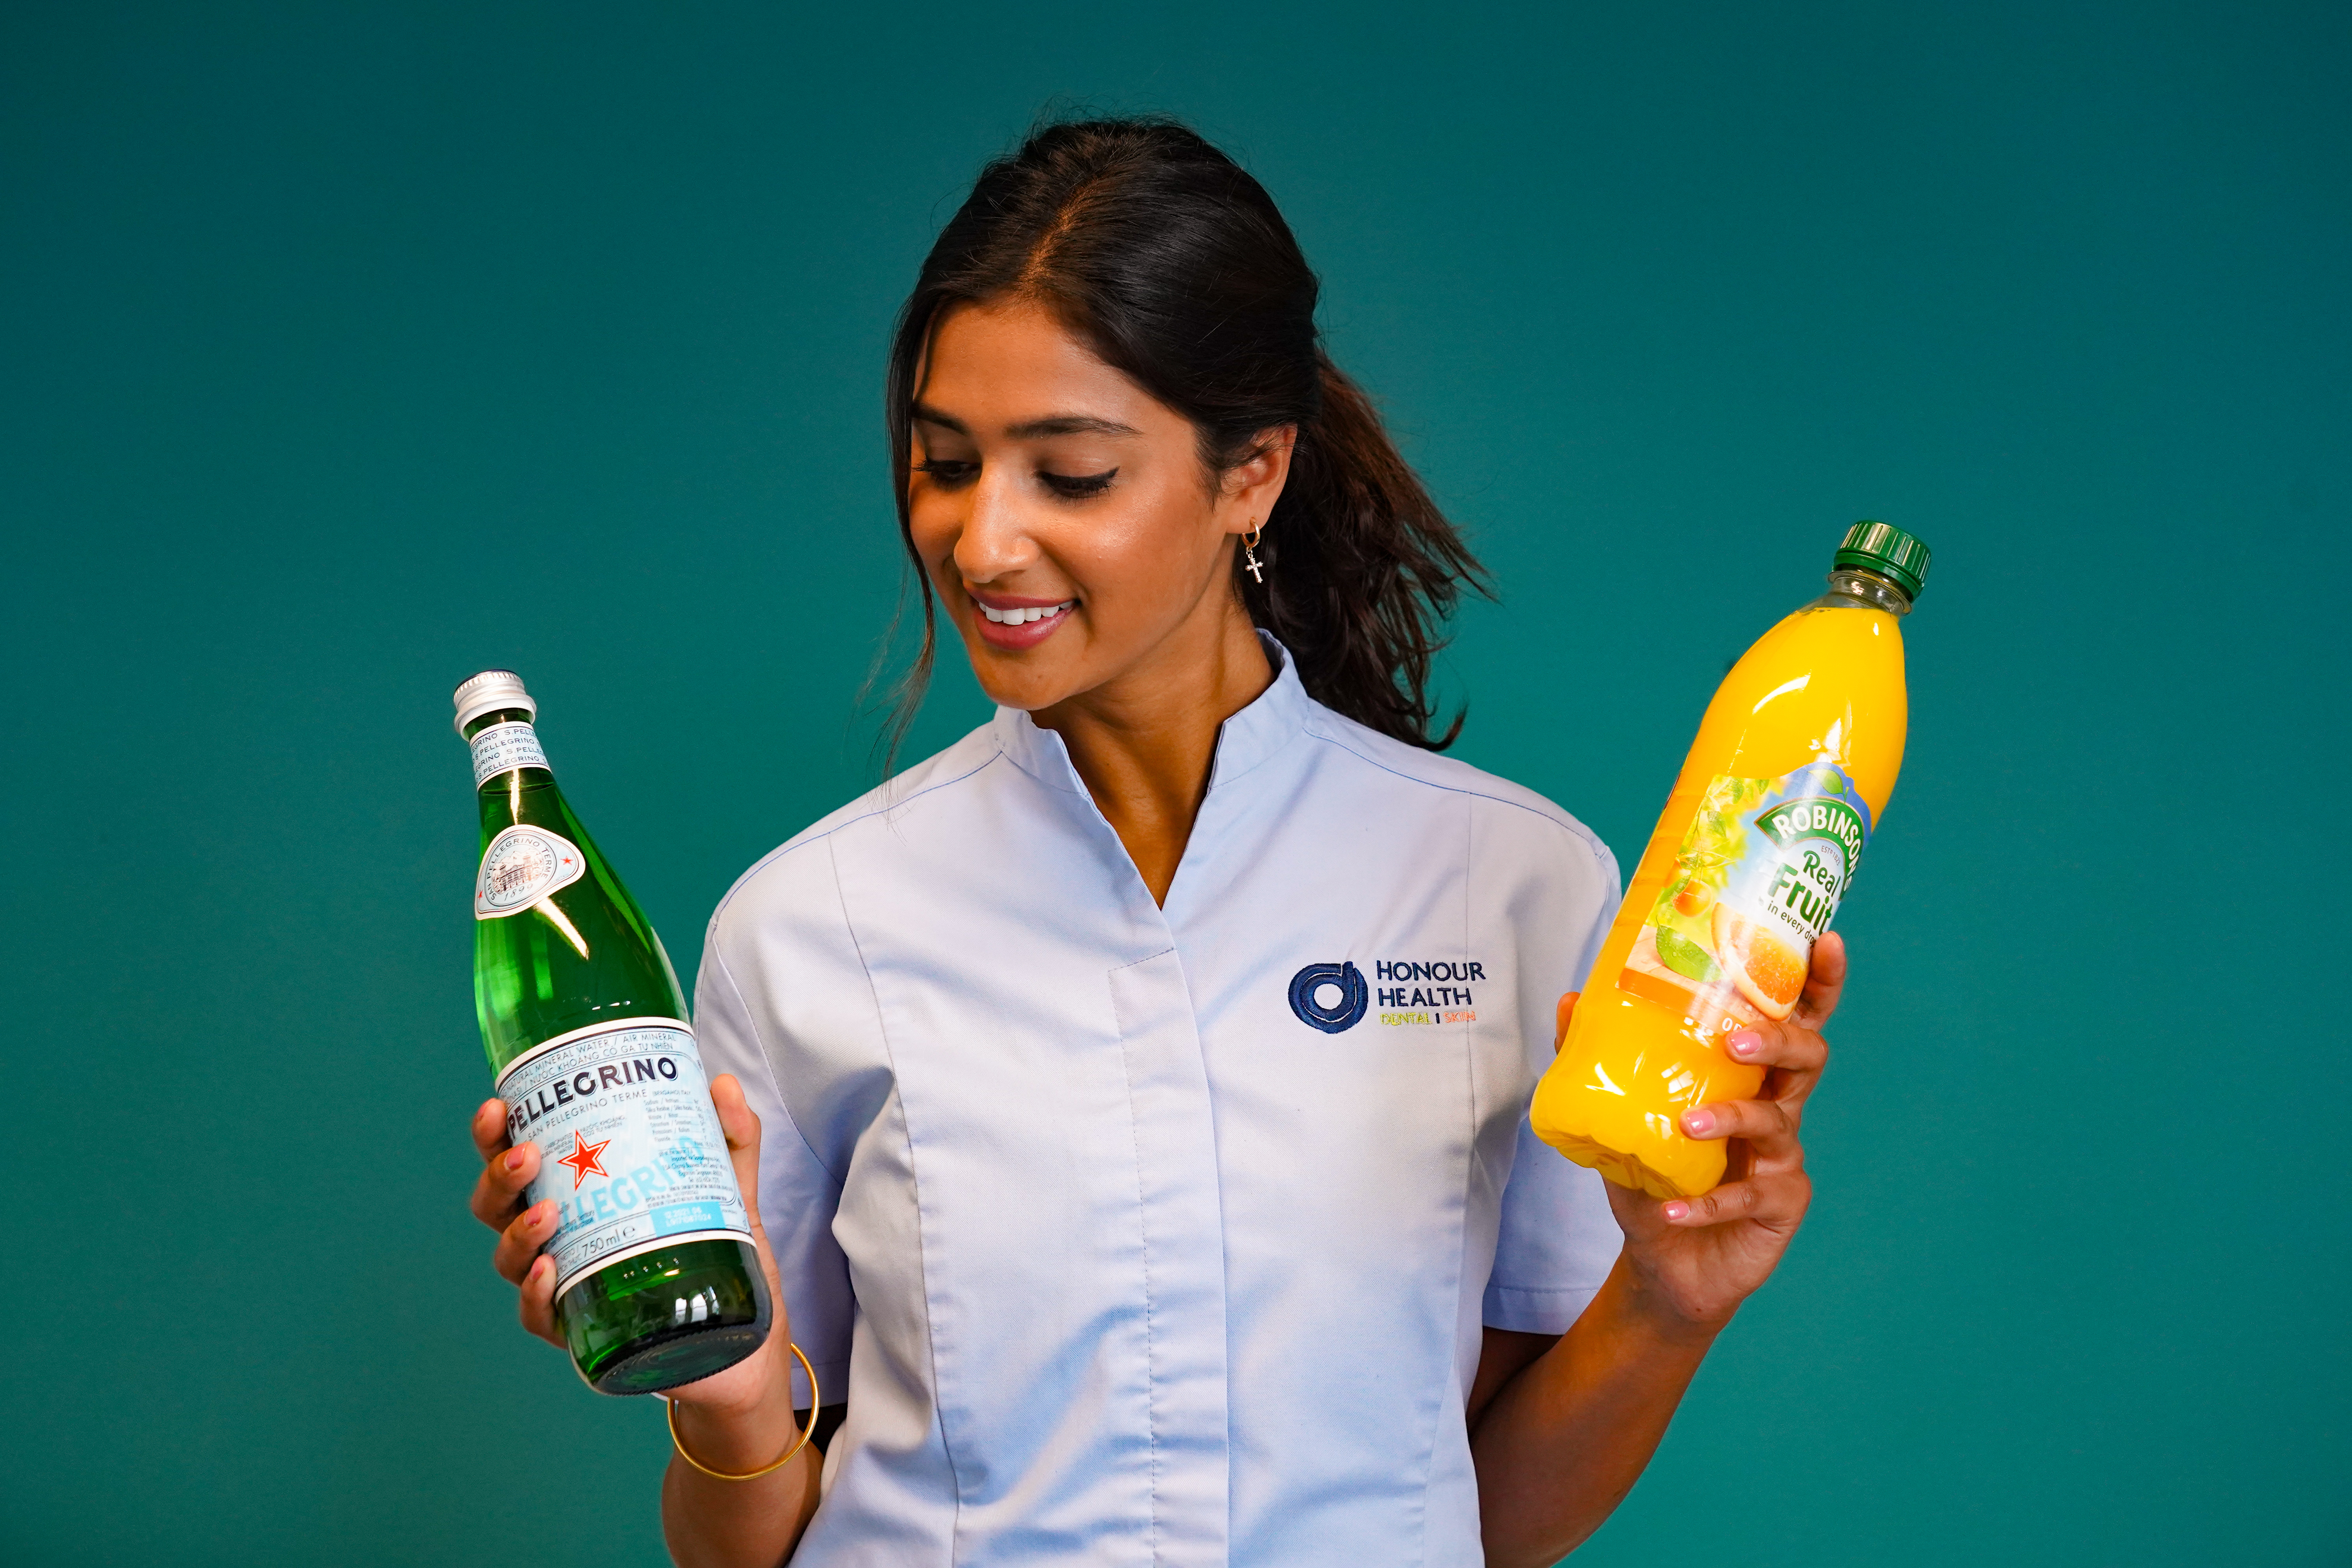 Gulshan Dhanoya, a dentist from Honour Health in Newcastle, writes about sugar-free drinks